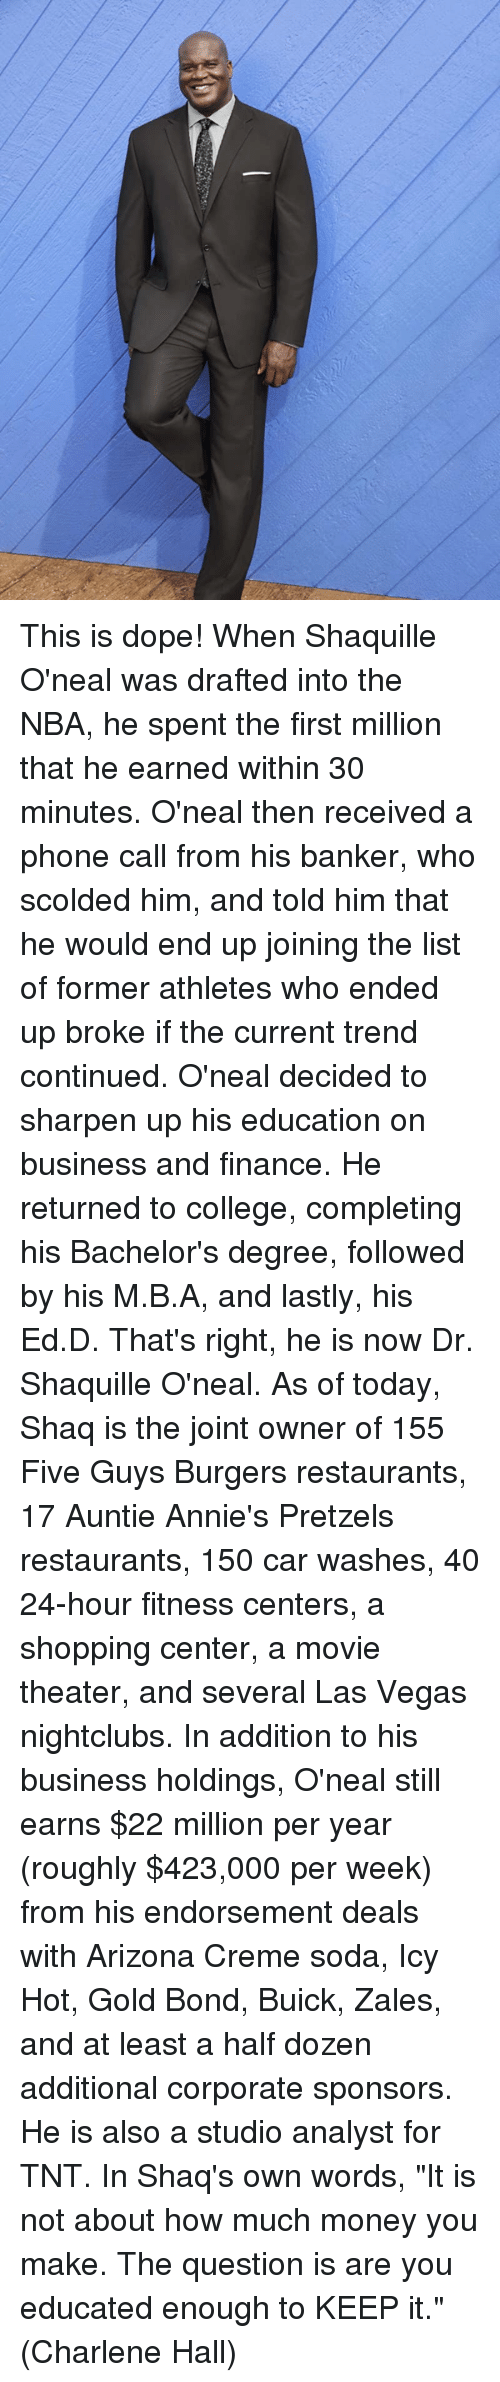 """shaqs: This is dope!  When Shaquille O'neal was drafted into the NBA, he spent the first million that he earned within 30 minutes. O'neal then received a phone call from his banker, who scolded him, and told him that he would end up joining the list of former athletes who ended up broke if the current trend continued.  O'neal decided to sharpen up his education on business and finance. He returned to college, completing his Bachelor's degree, followed by his M.B.A, and lastly, his Ed.D. That's right, he is now Dr. Shaquille O'neal.  As of today, Shaq is the joint owner of 155 Five Guys Burgers restaurants, 17 Auntie Annie's Pretzels restaurants, 150 car washes, 40 24-hour fitness centers, a shopping center, a movie theater, and several Las Vegas nightclubs.  In addition to his business holdings, O'neal still earns $22 million per year (roughly $423,000 per week) from his endorsement deals with Arizona Creme soda, Icy Hot, Gold Bond, Buick, Zales, and at least a half dozen additional corporate sponsors. He is also a studio analyst for TNT.  In Shaq's own words, """"It is not about how much money you make. The question is are you educated enough to KEEP it.""""  (Charlene Hall)"""